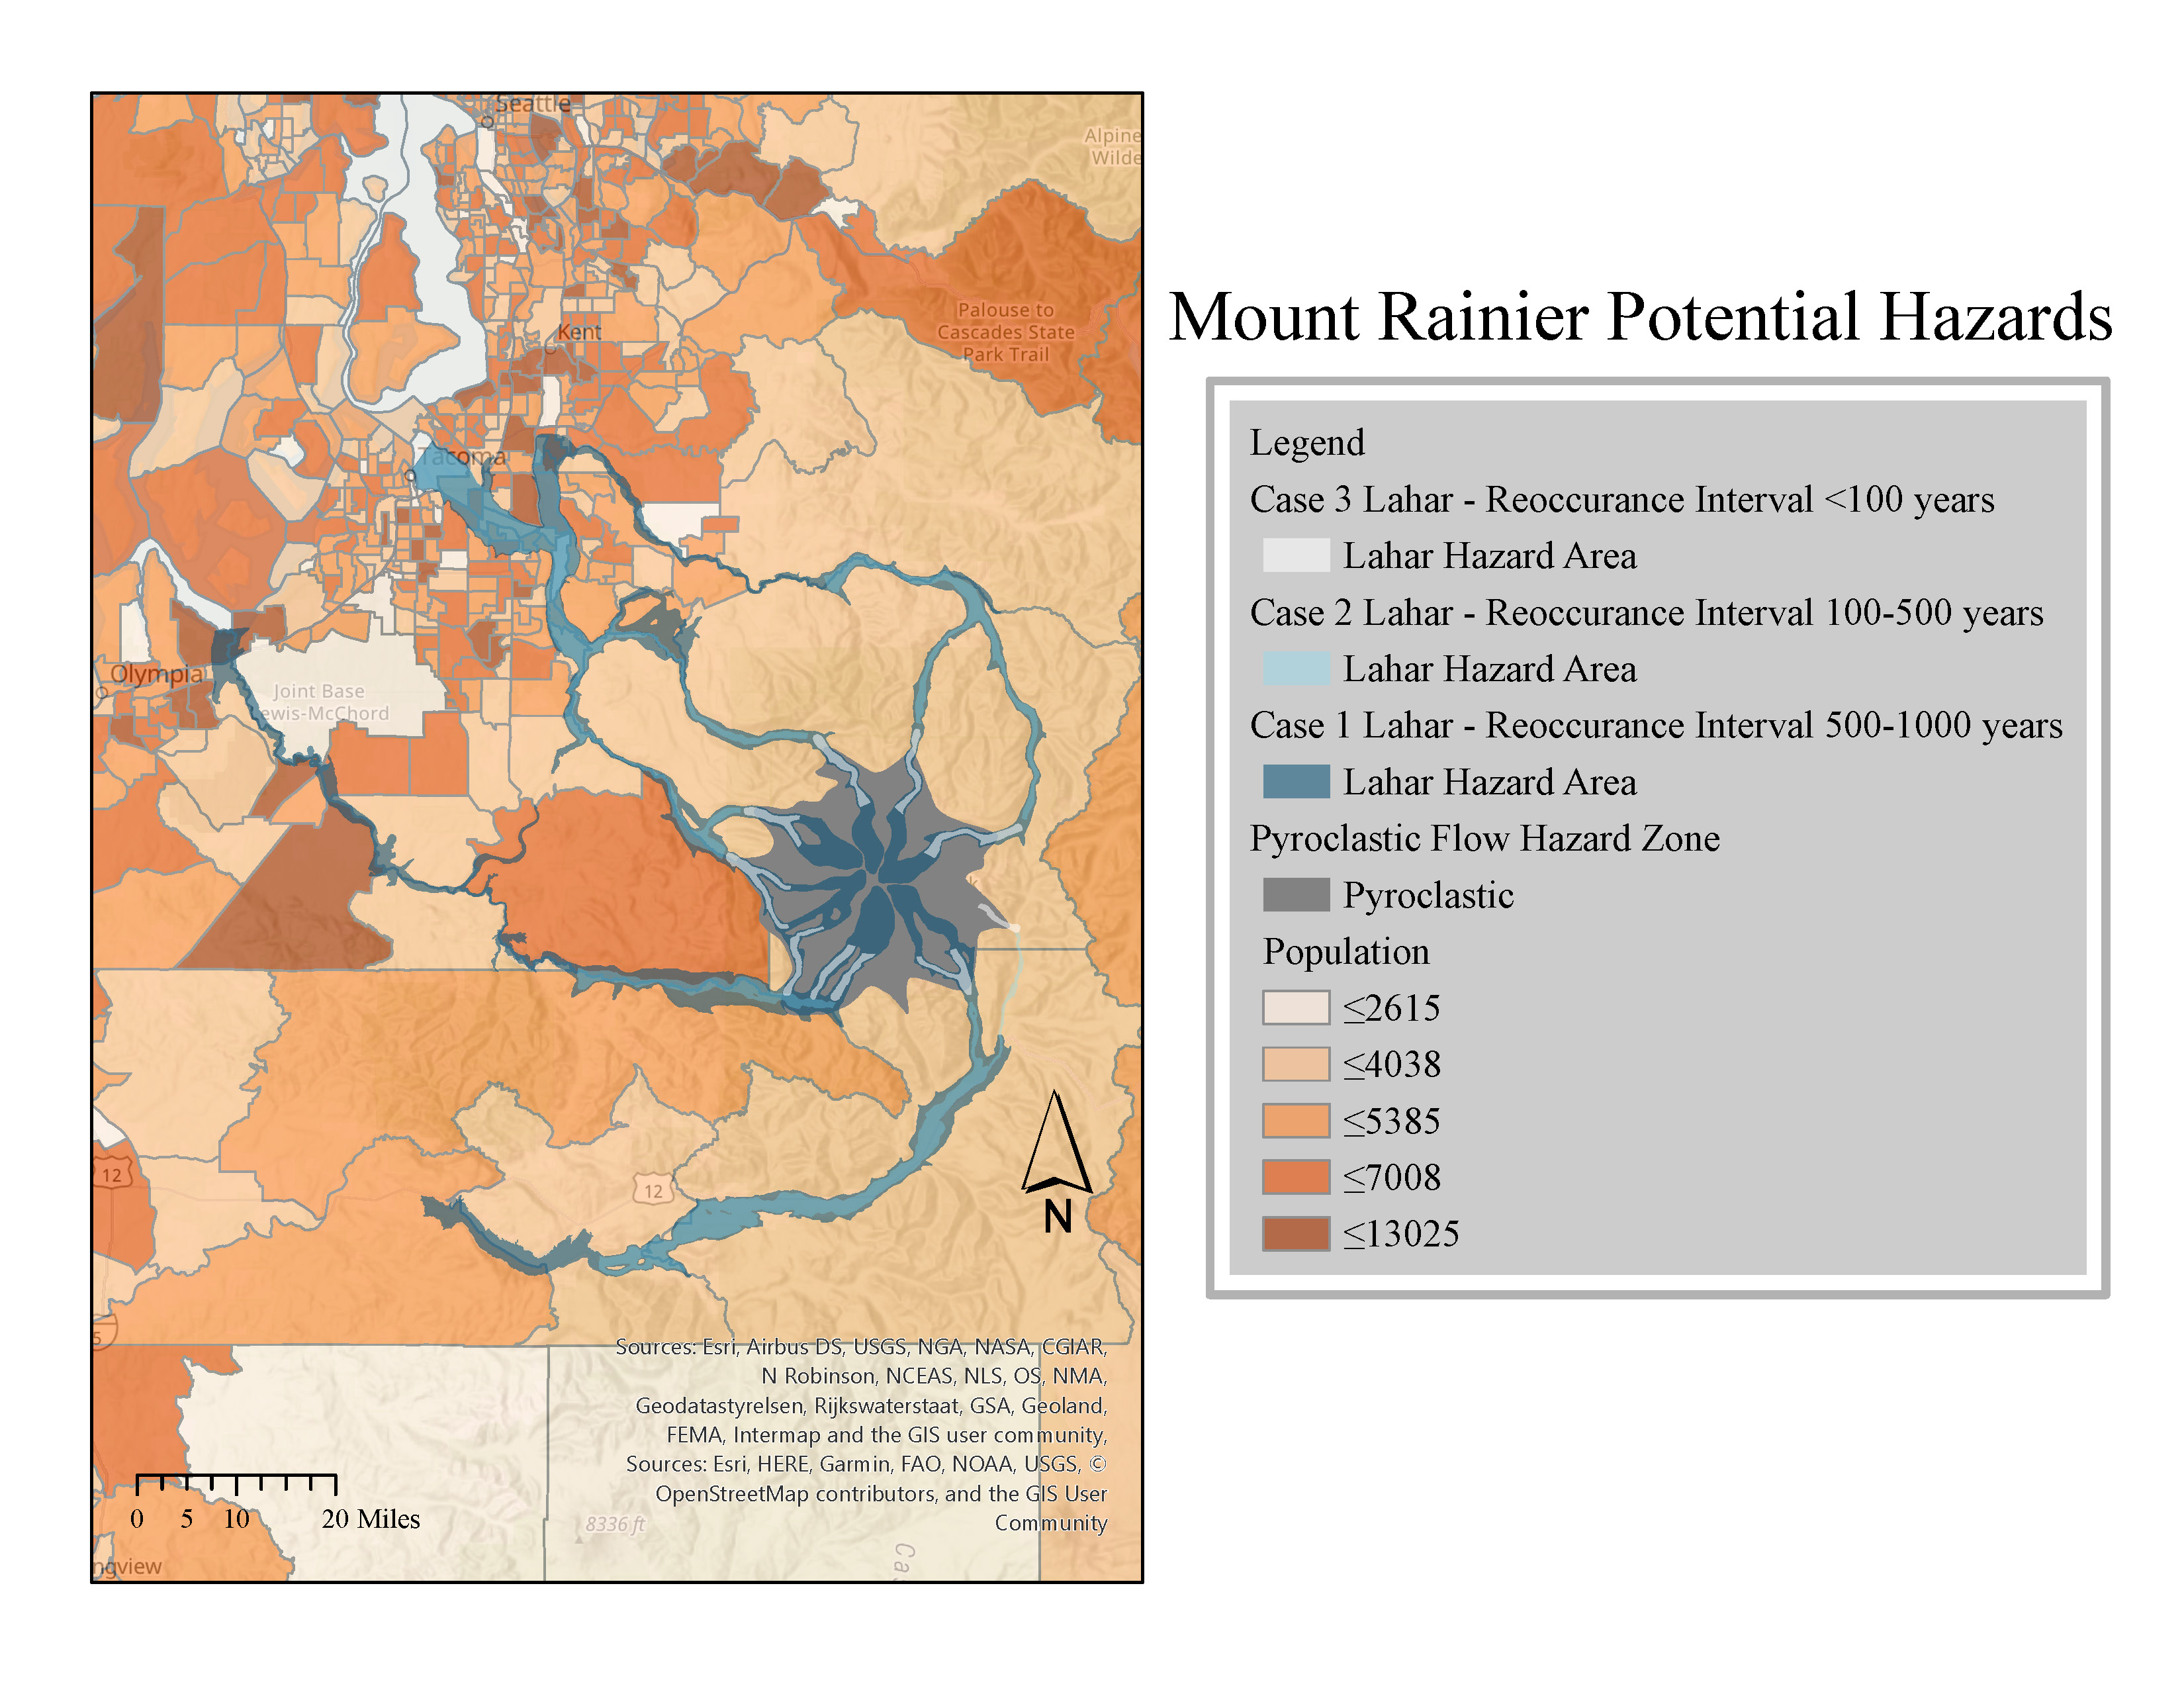 Mount Rainier Potential Hazards map